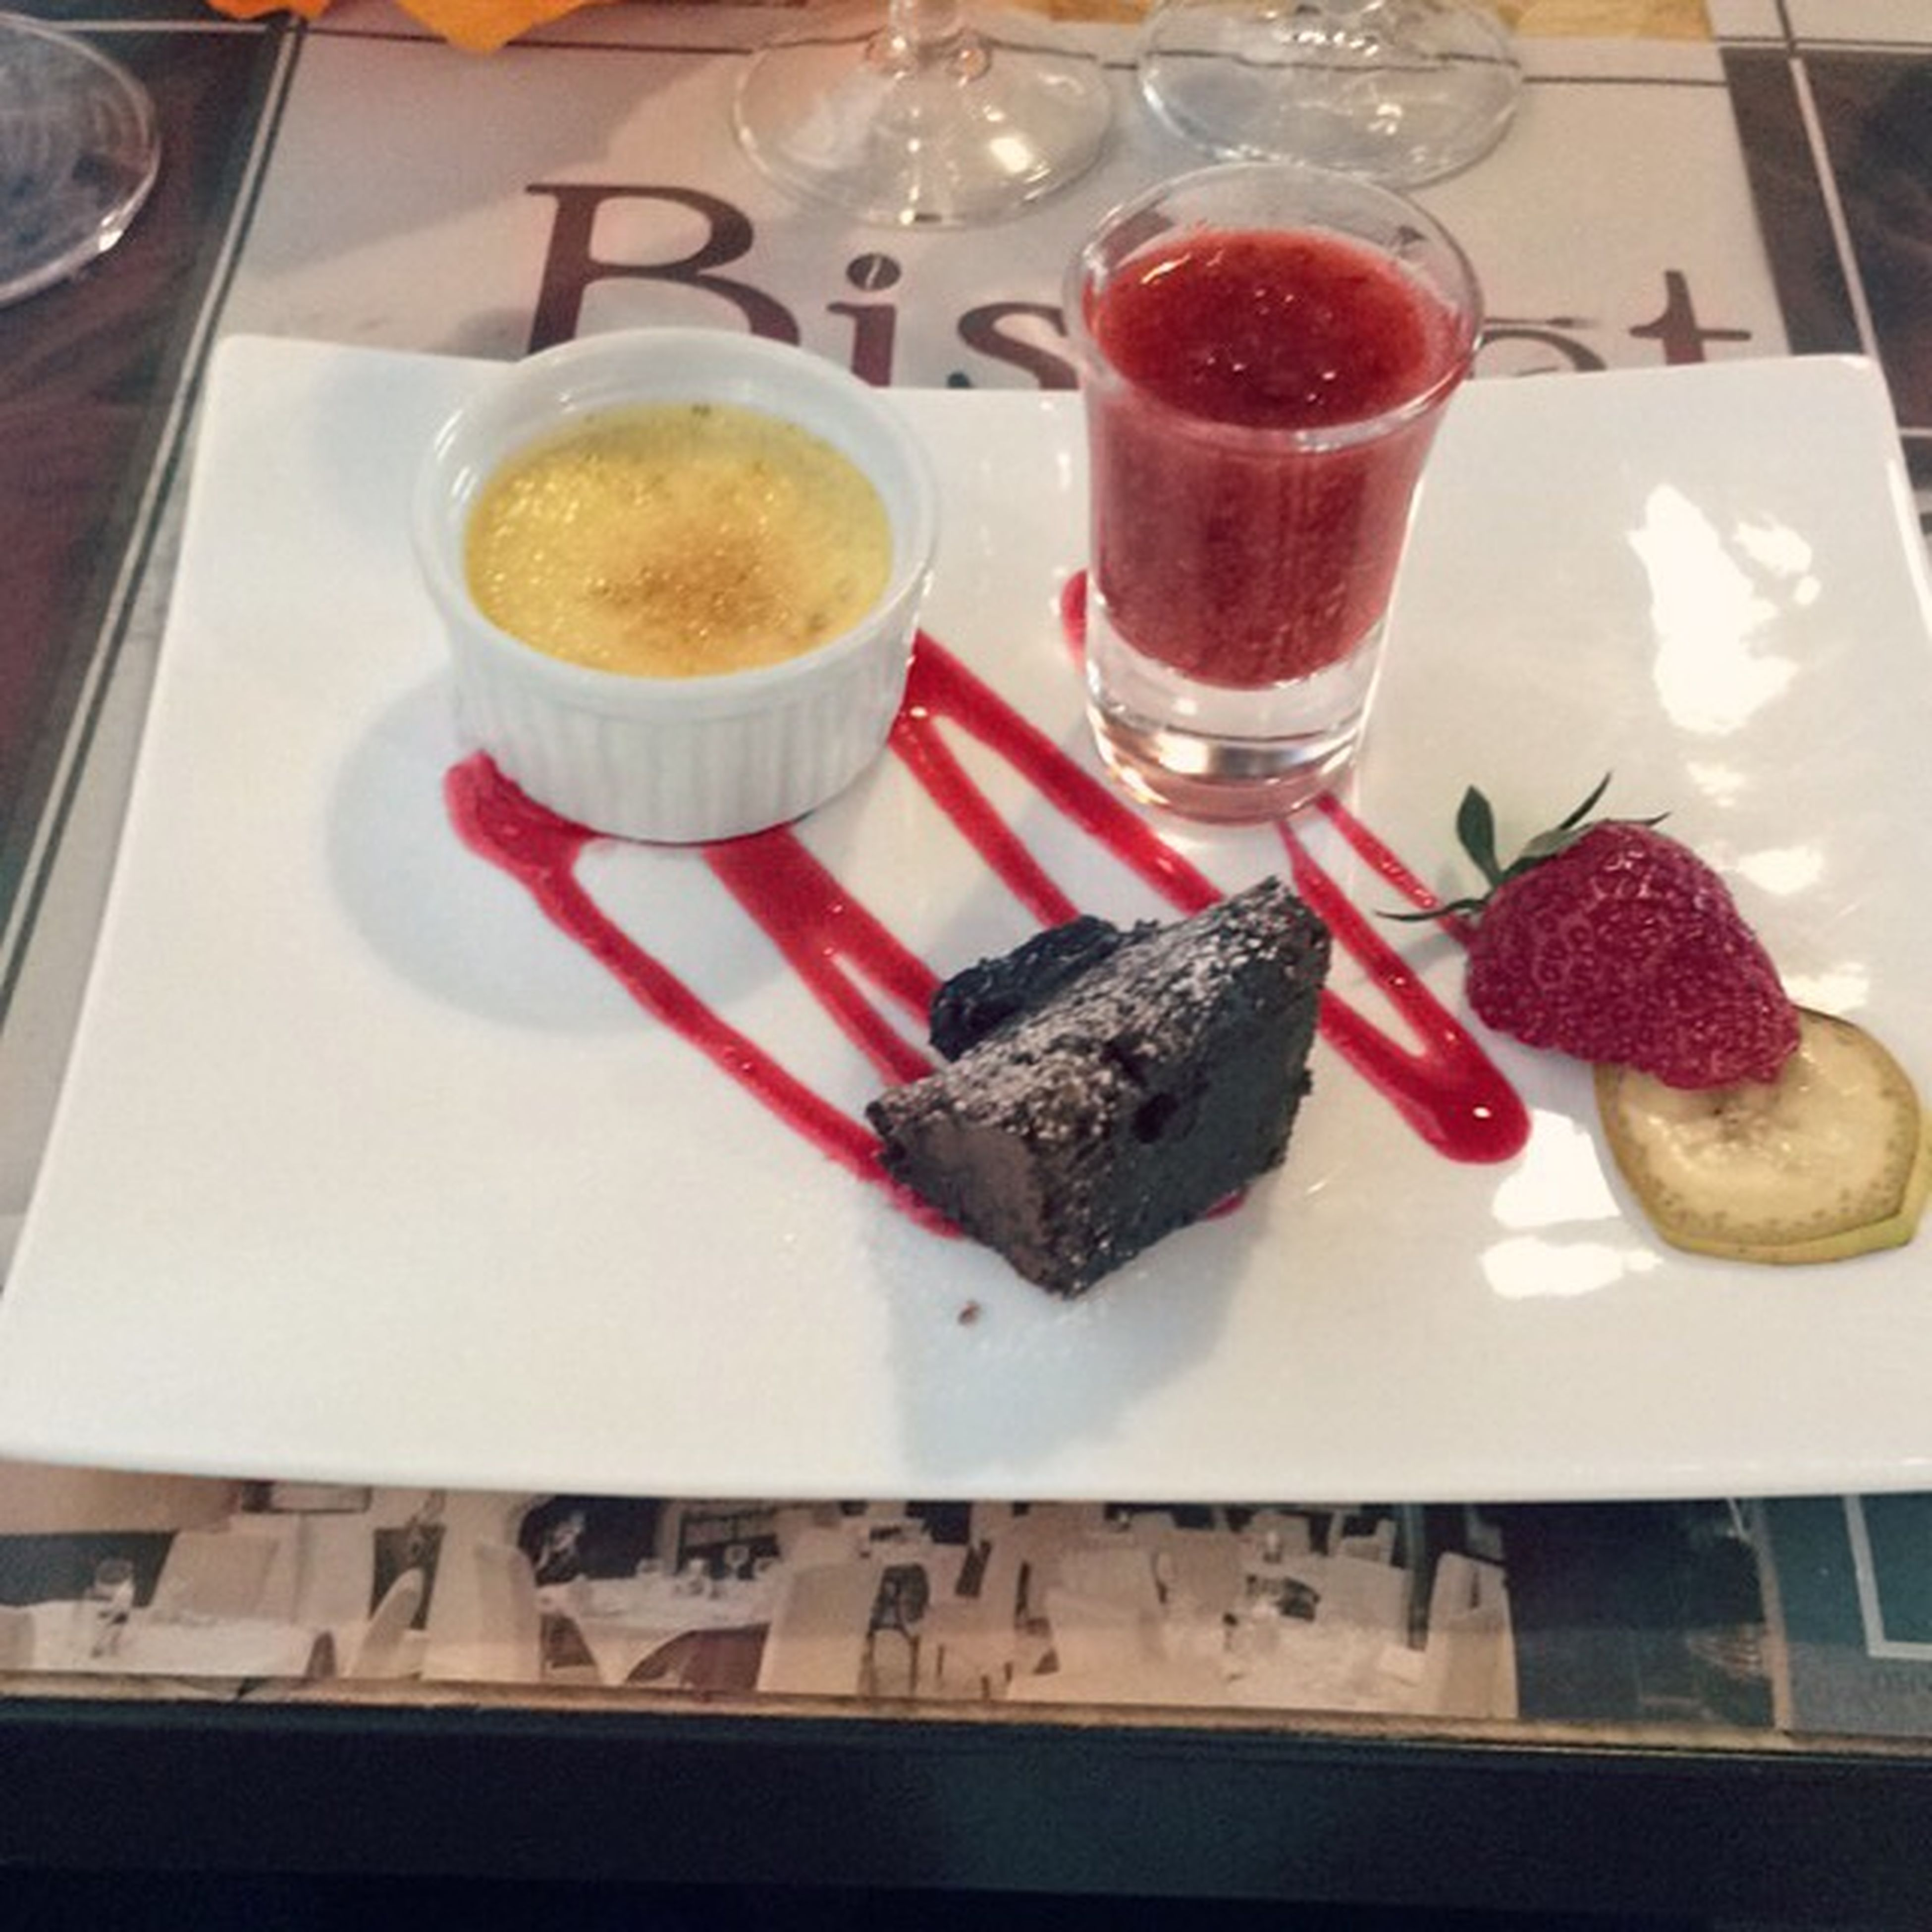 food and drink, food, freshness, indoors, ready-to-eat, plate, still life, table, sweet food, indulgence, strawberry, serving size, fork, drink, dessert, unhealthy eating, high angle view, drinking glass, cake